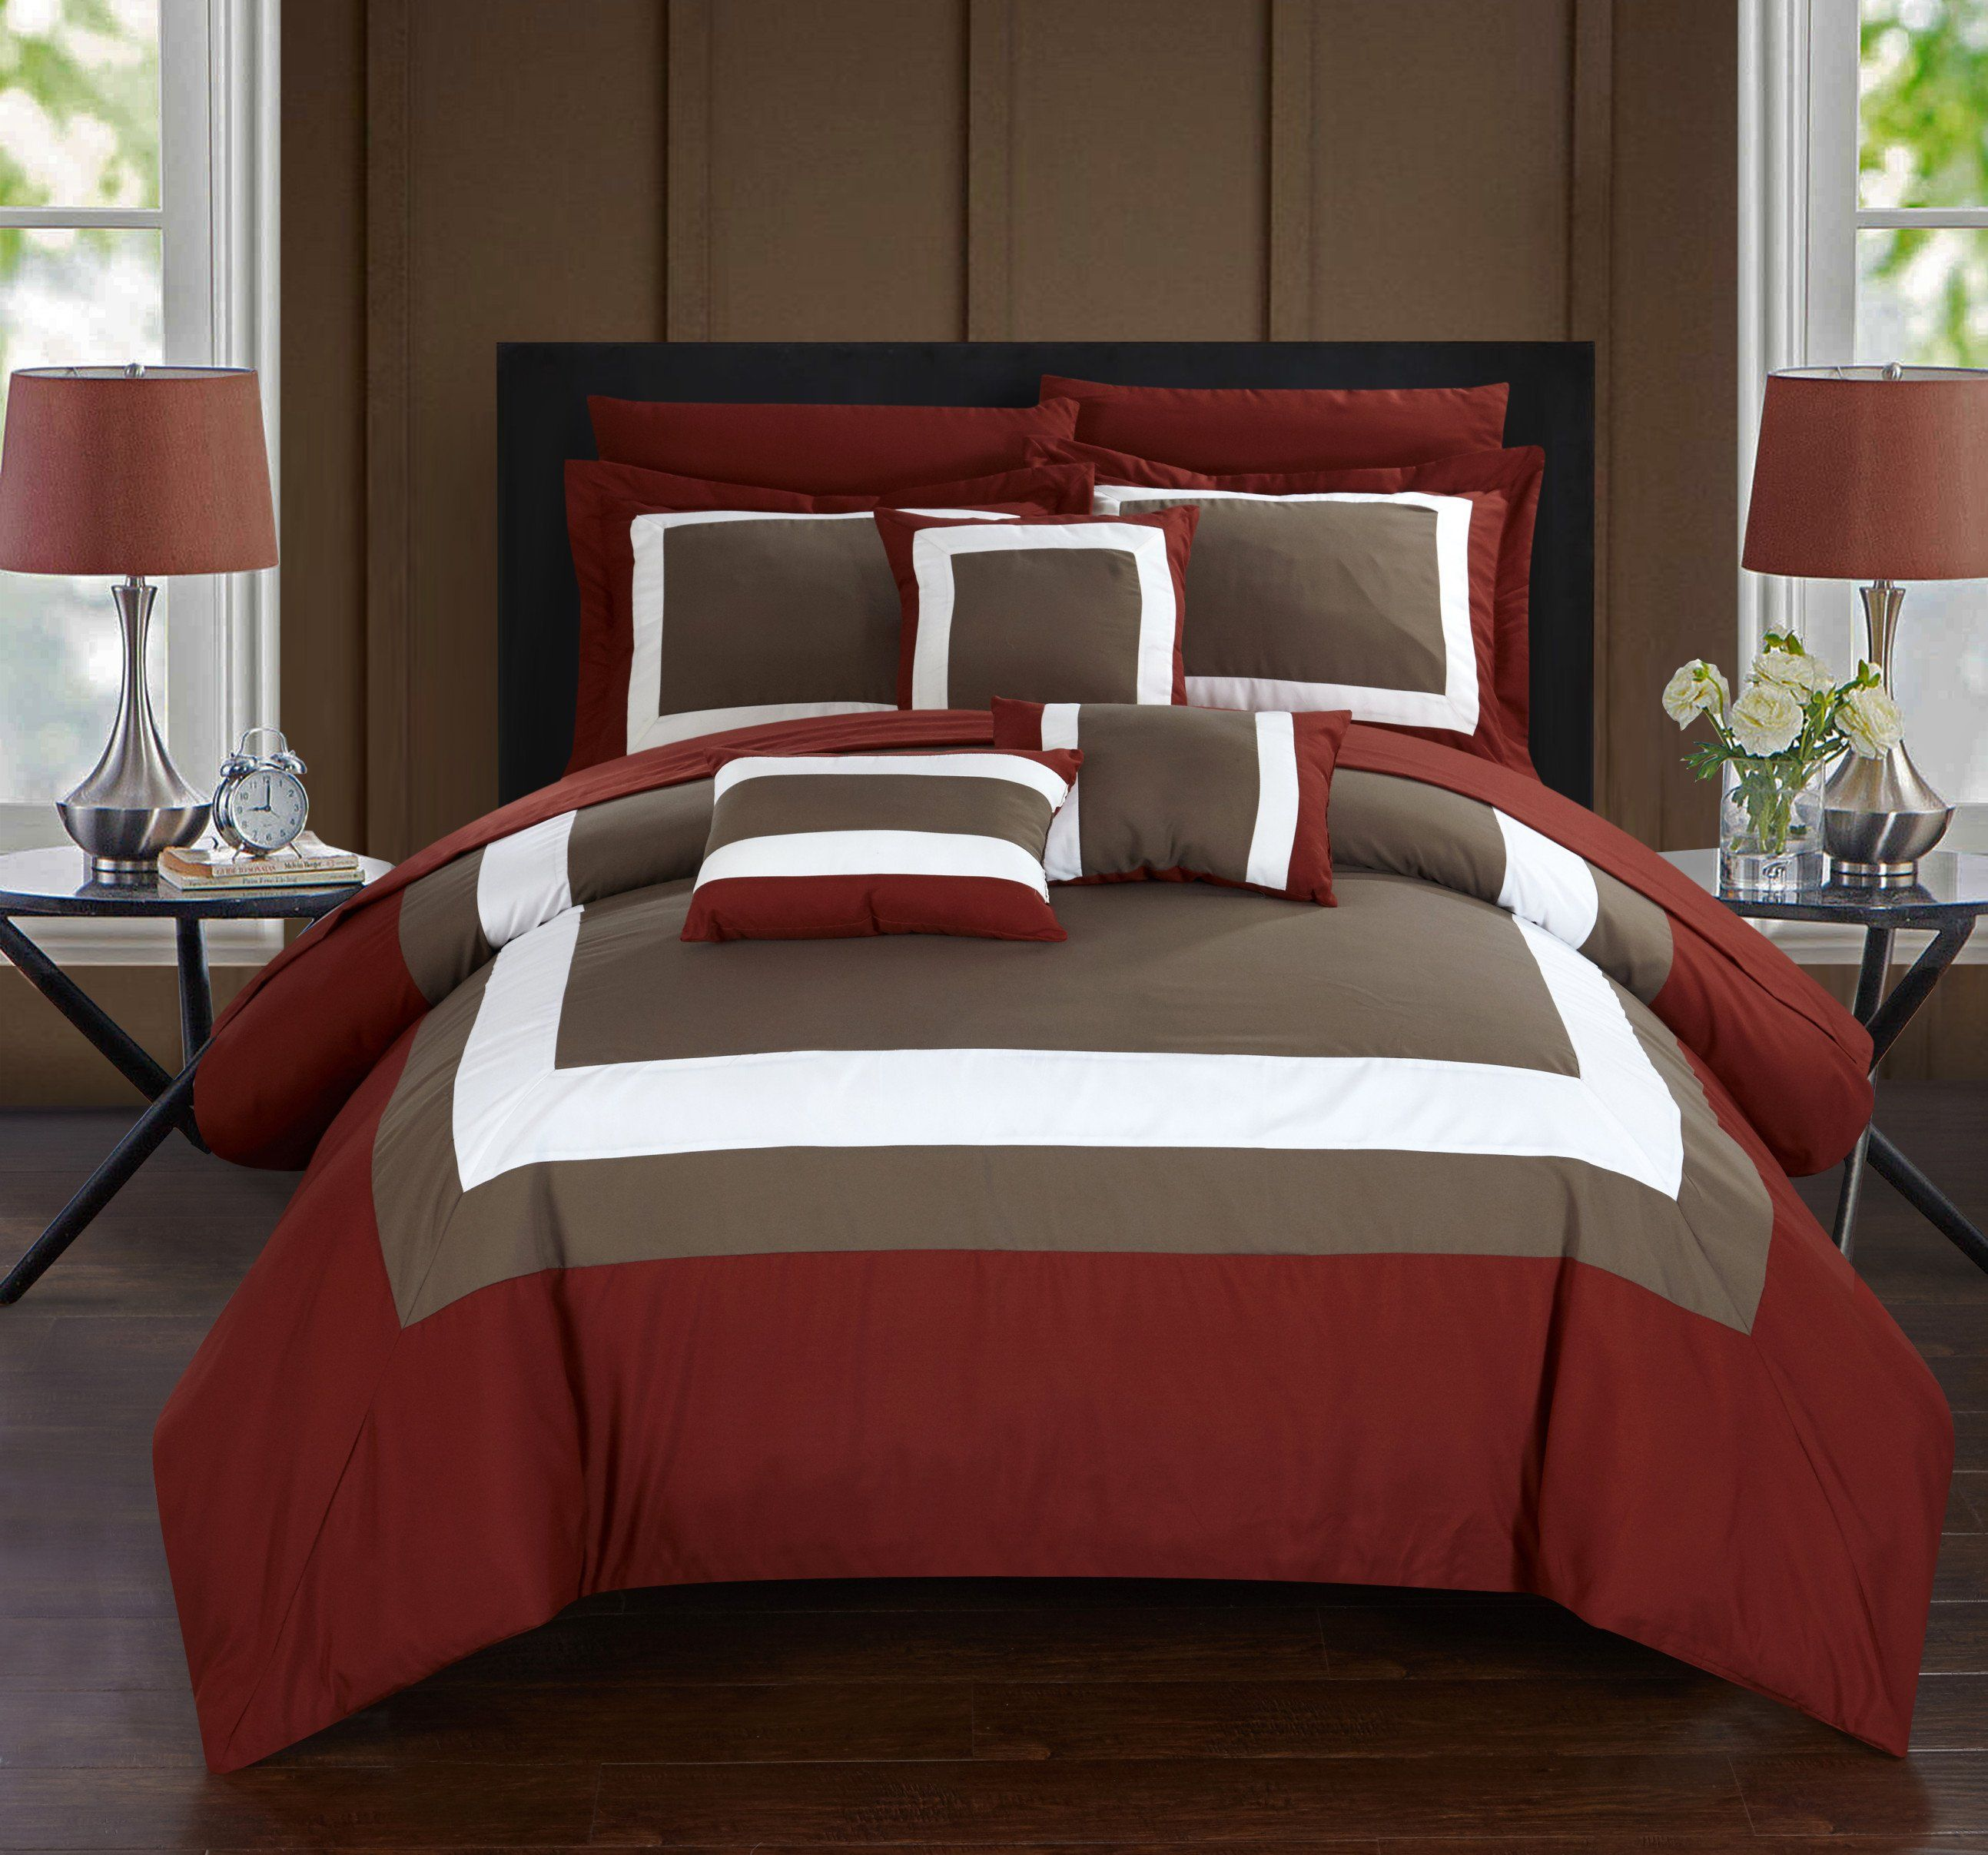 hotel bedding the tag comfortables luxury sets comforter archives